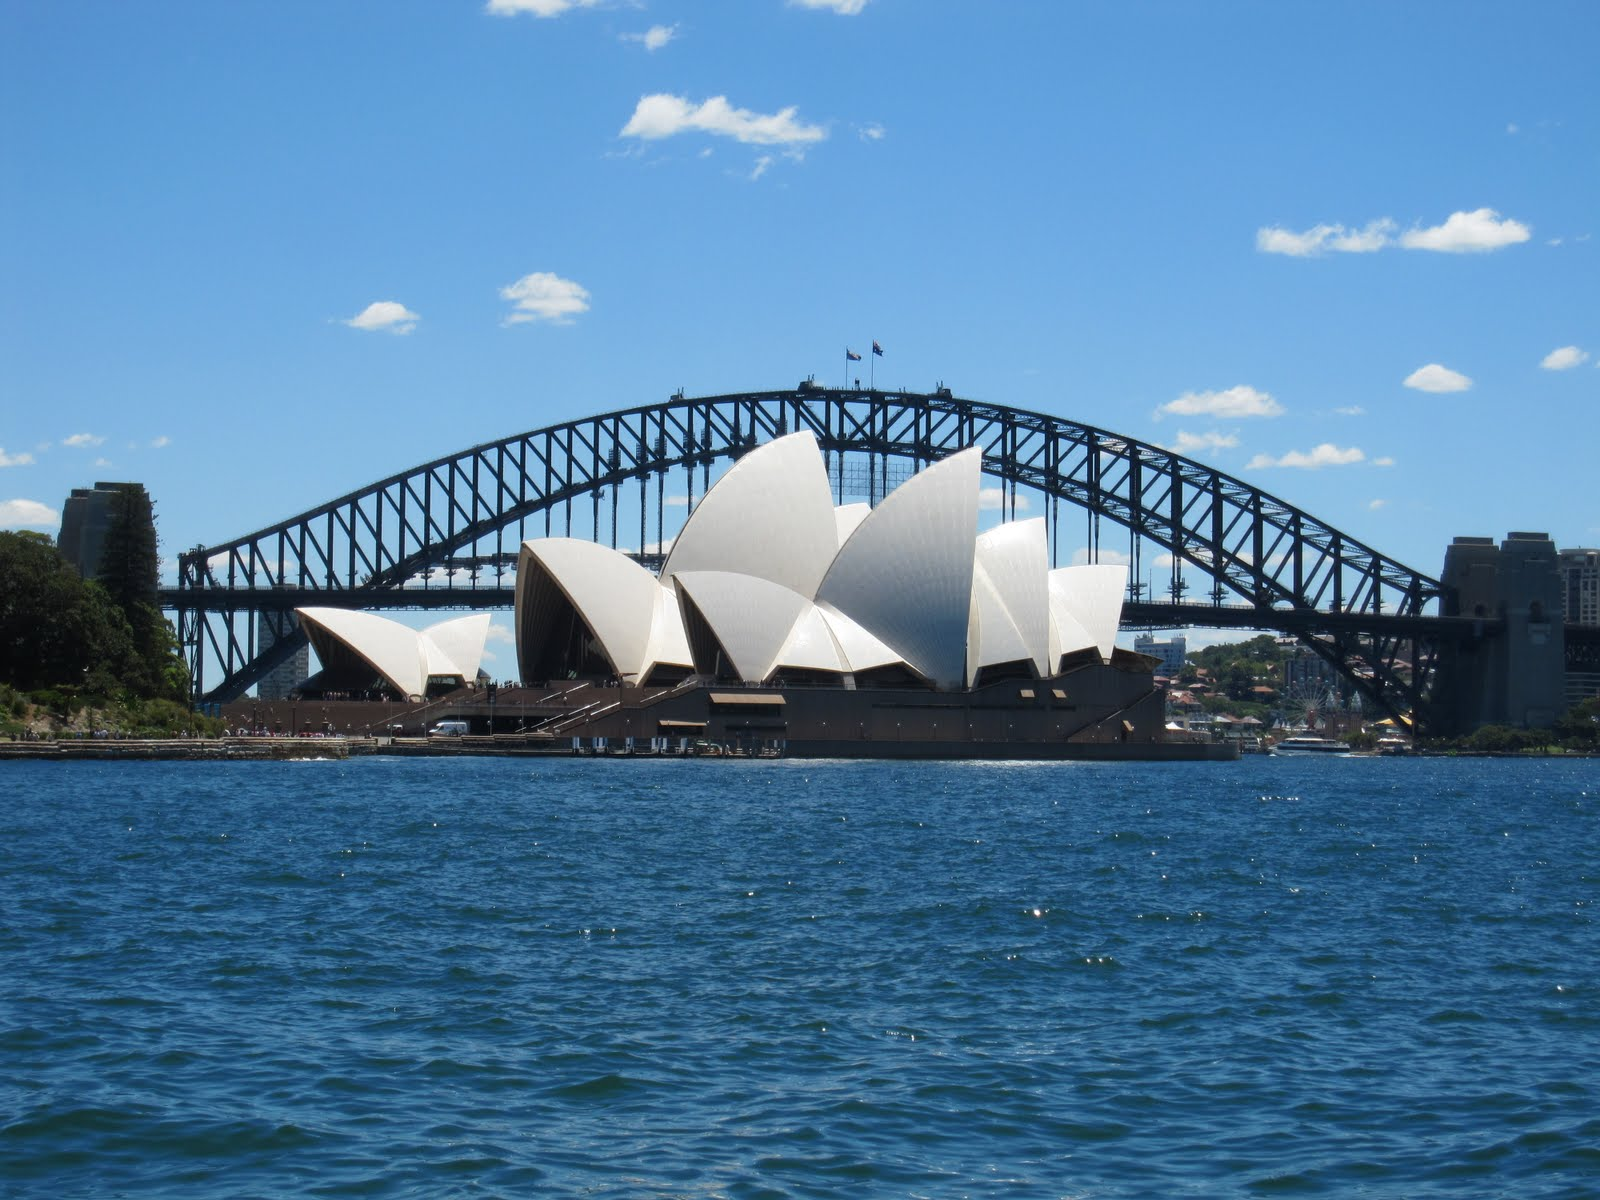 Sydney - City and Suburbs: Opera House and Harbour Bridge